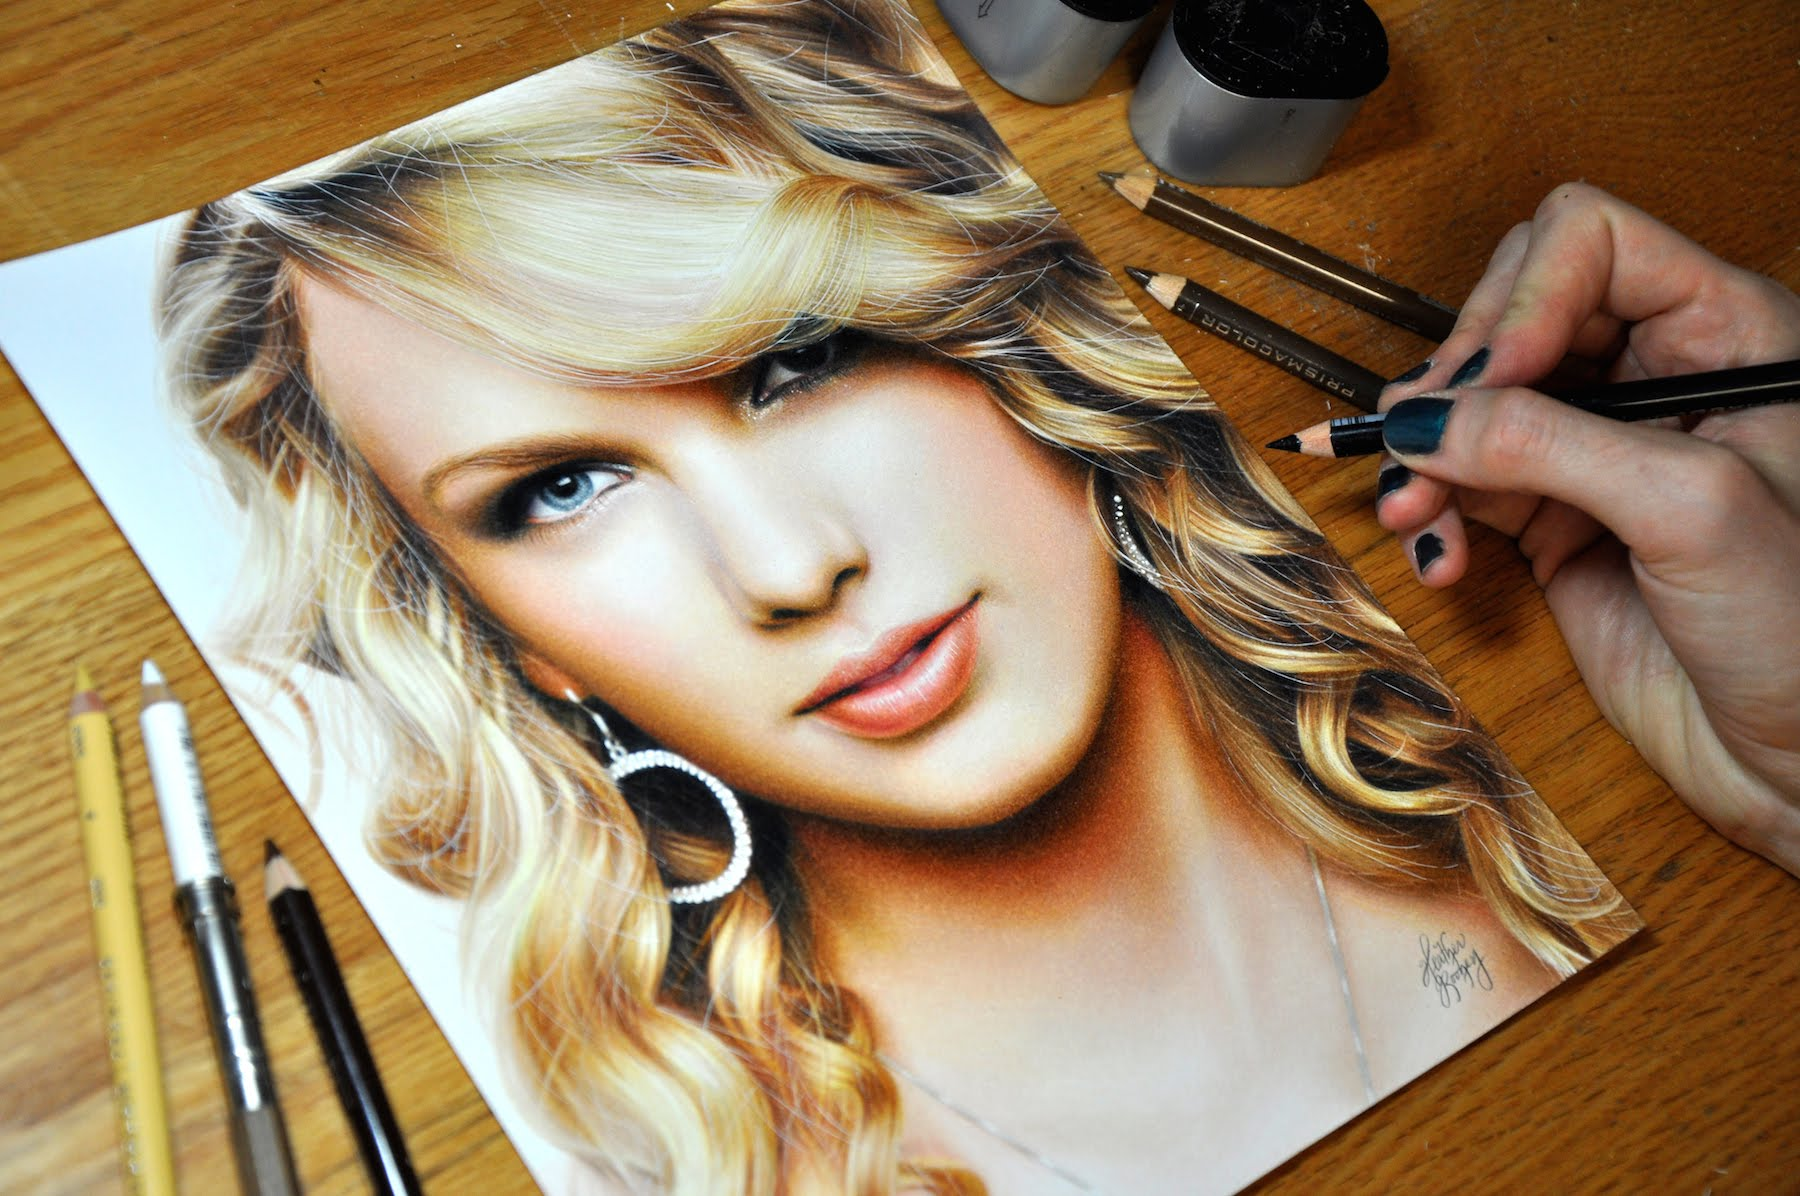 Drawn celebrity real life Swift Taylor YouTube Drawing